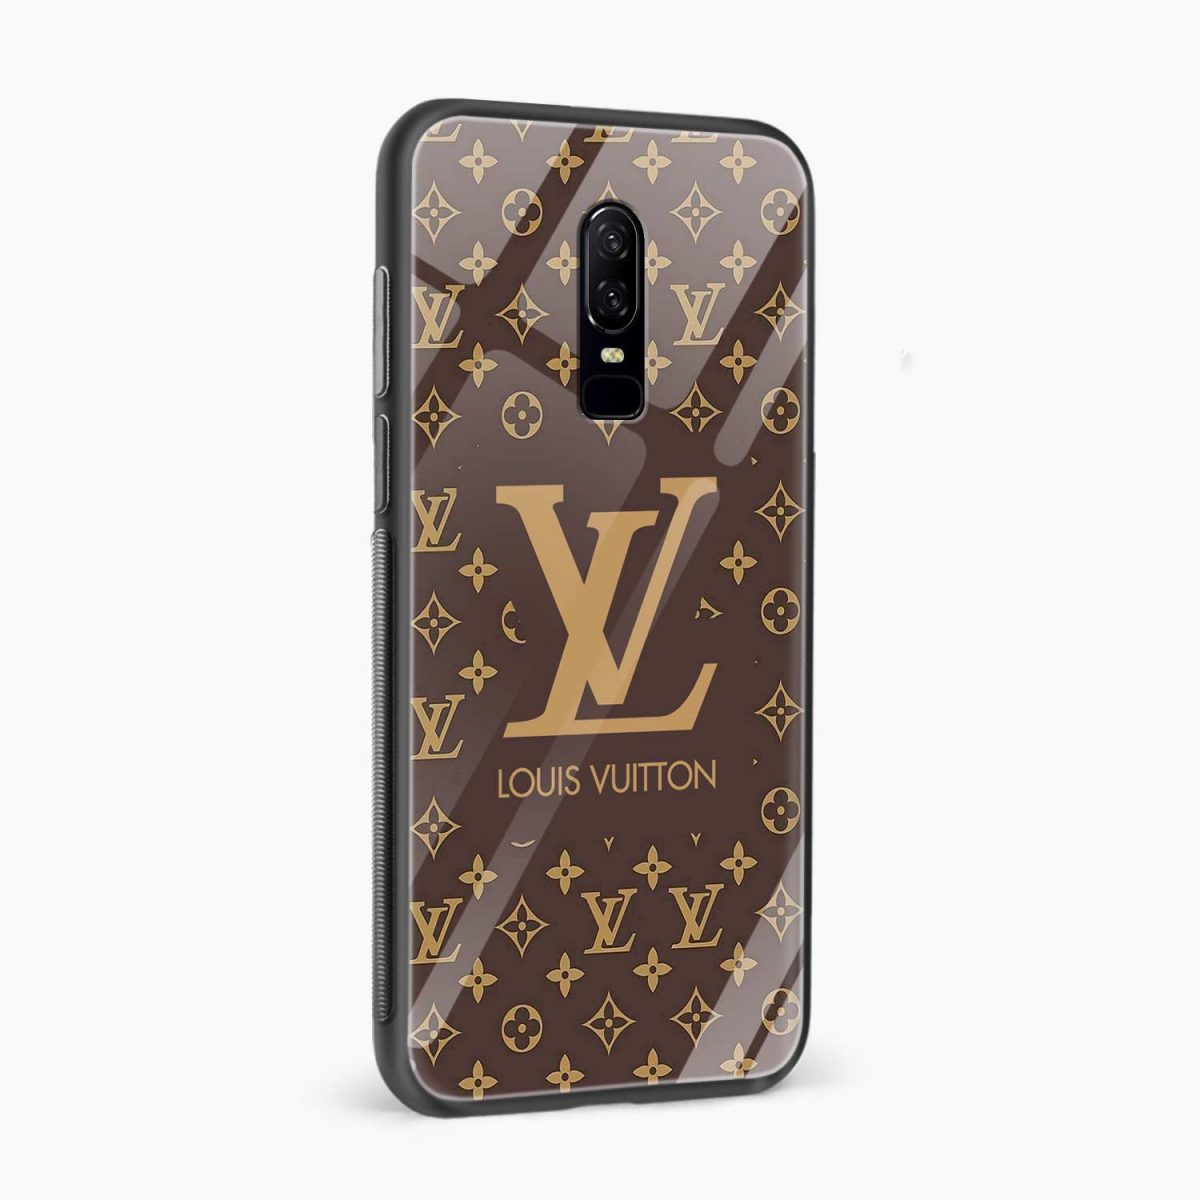 LOUIS VUITTON side view oneplus 6 back cover